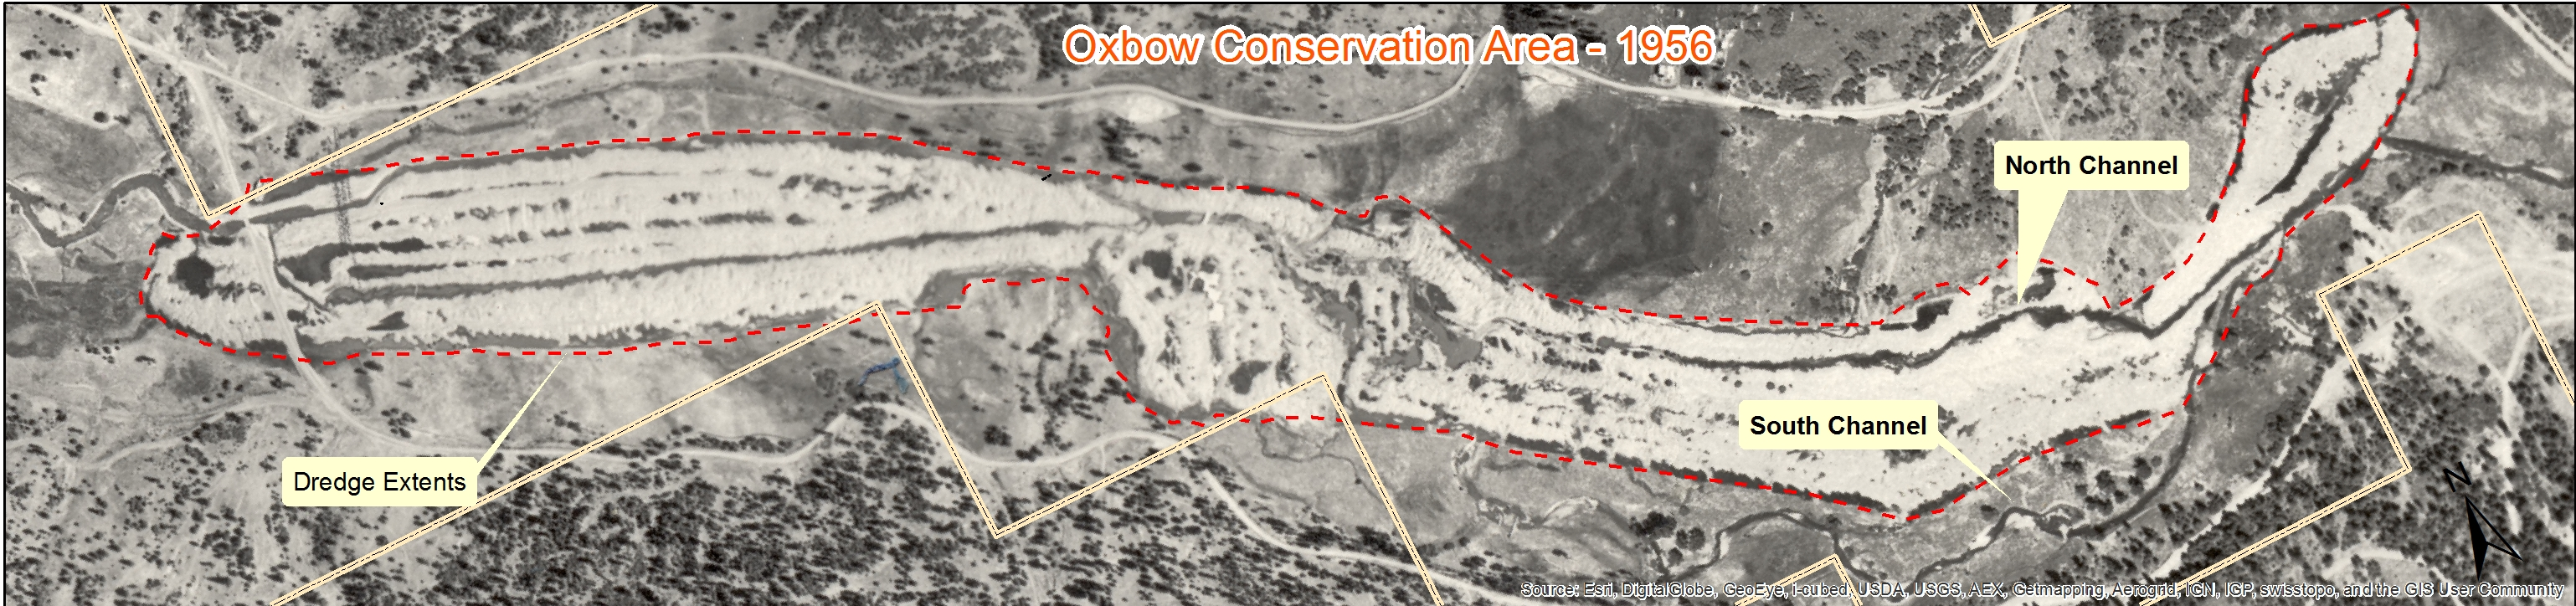 Oxbow Project area and how it look in 1956, prior to the tailings leveling in the 1970s